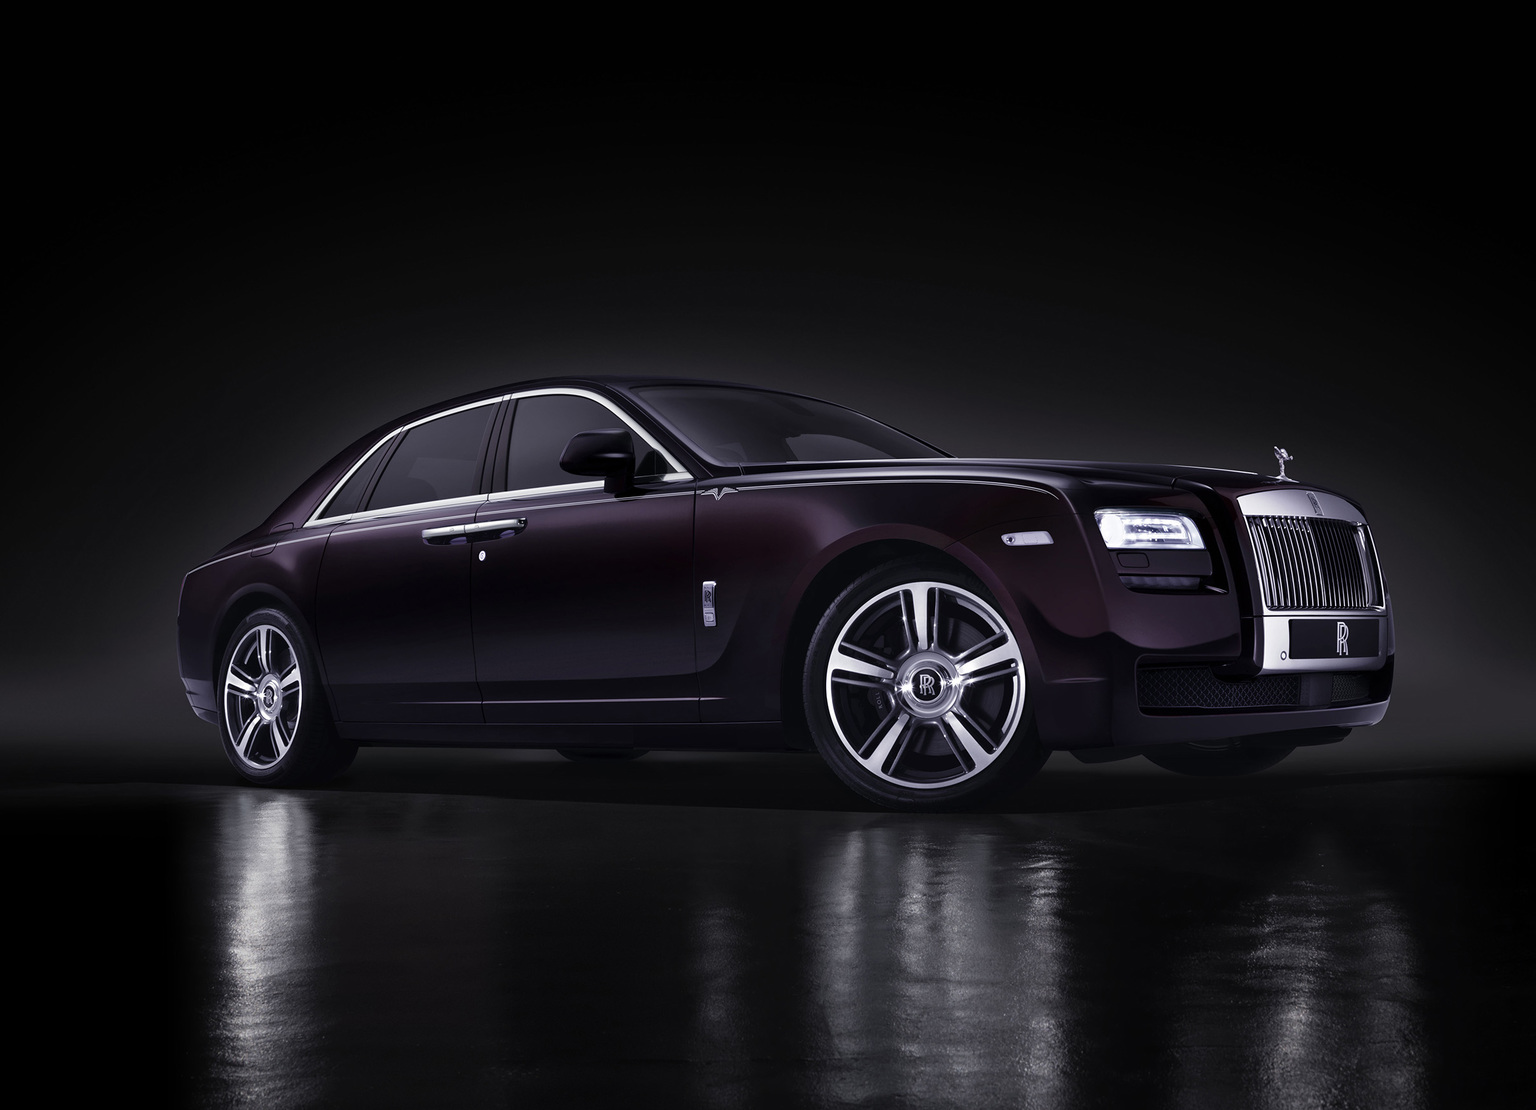 2014 rolls royce ghost v specification rolls royce. Black Bedroom Furniture Sets. Home Design Ideas